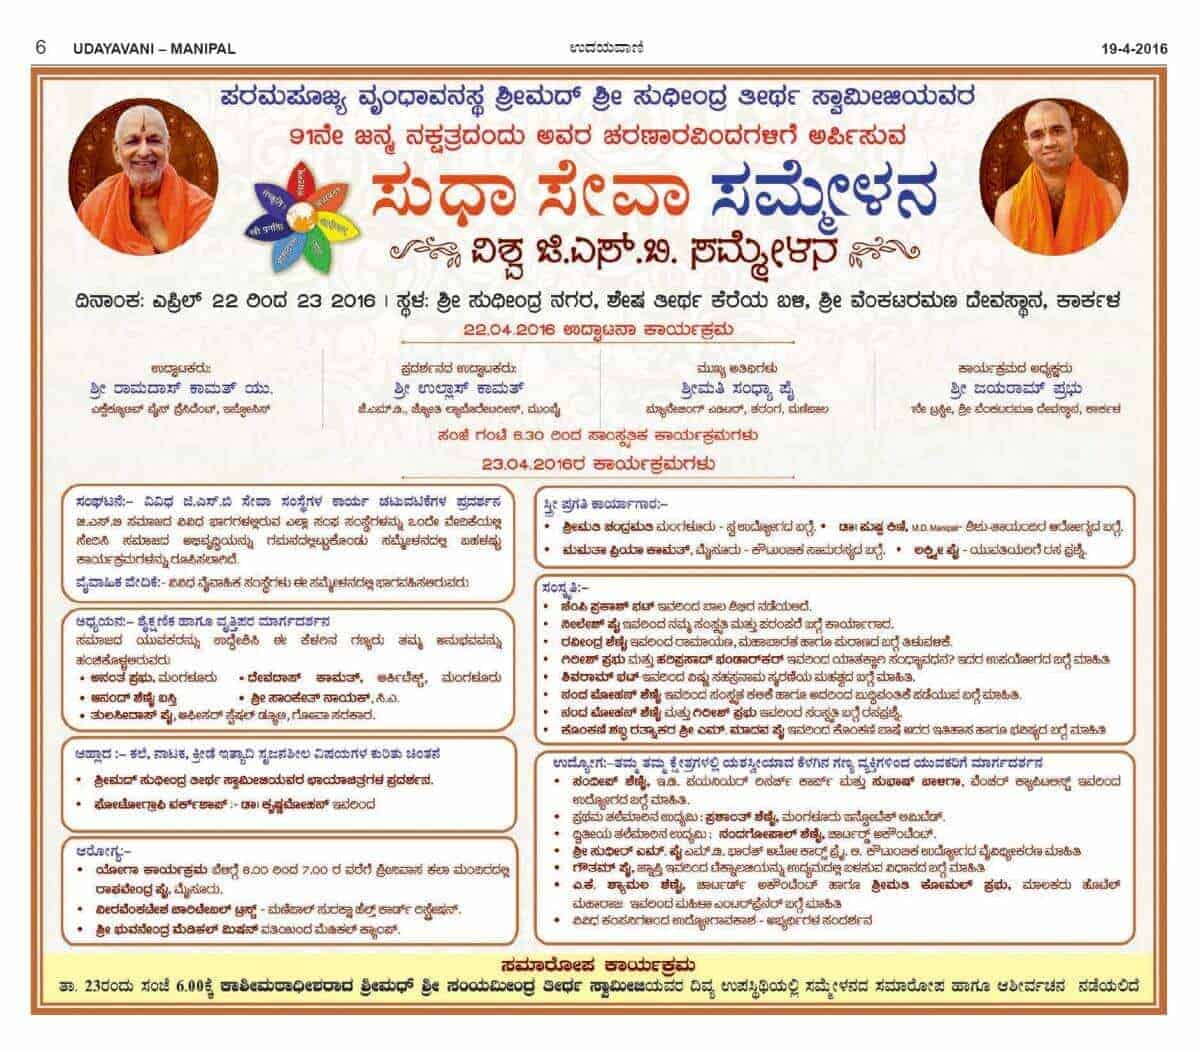 Sudha Seva Sammelan on April 22-23, 2016